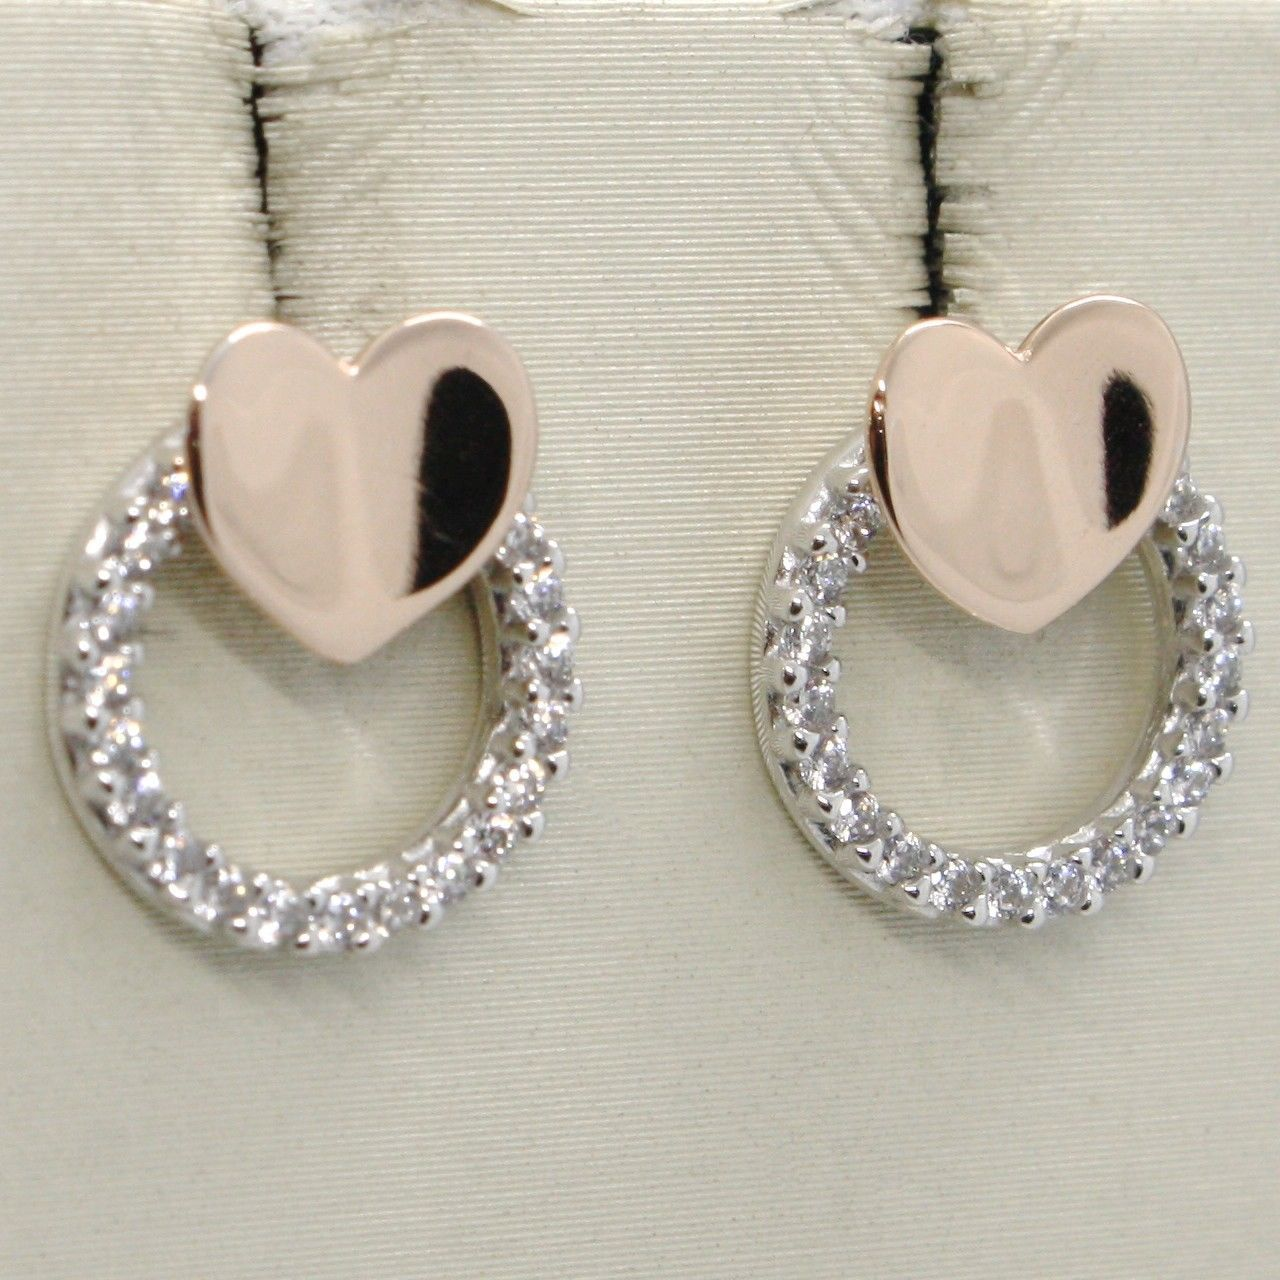 18K WHITE & ROSE GOLD HEART AND CIRCLE EARRINGS, WHITE ZIRCONIA, MADE IN ITALY